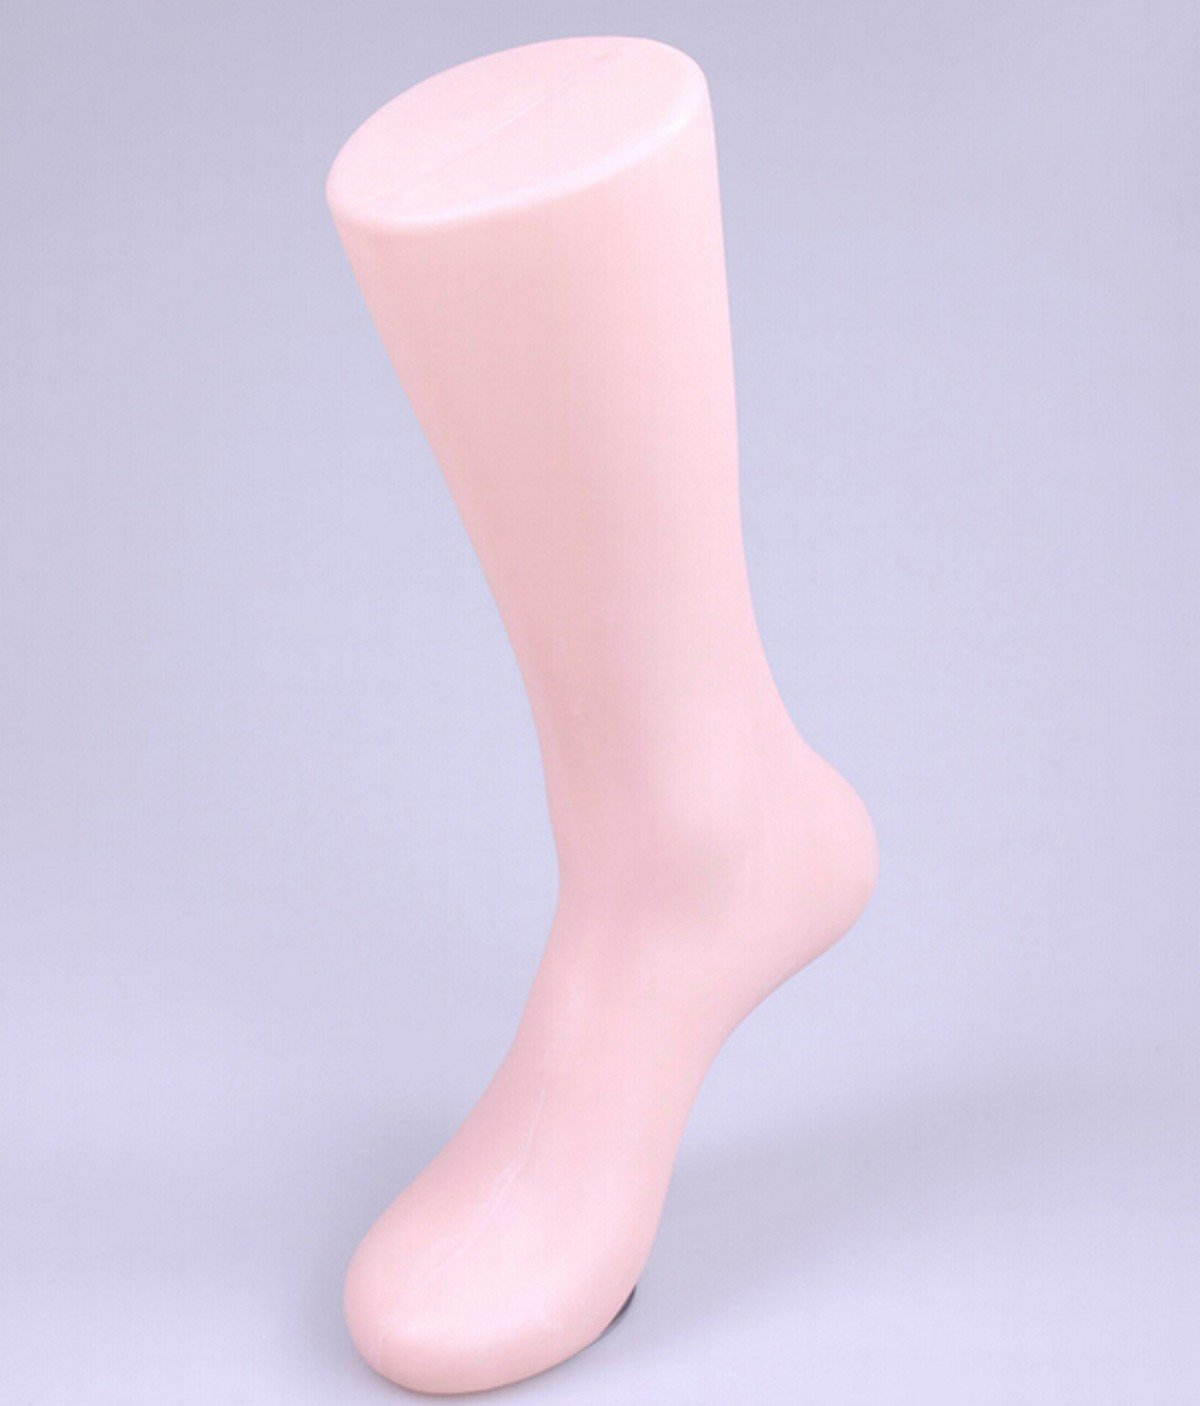 1 Plastic Male Mannequin Right Foot Magnetic Bottom, Mannequin Legs Feet with Magnet, For Sox/Sock Display by Neutral